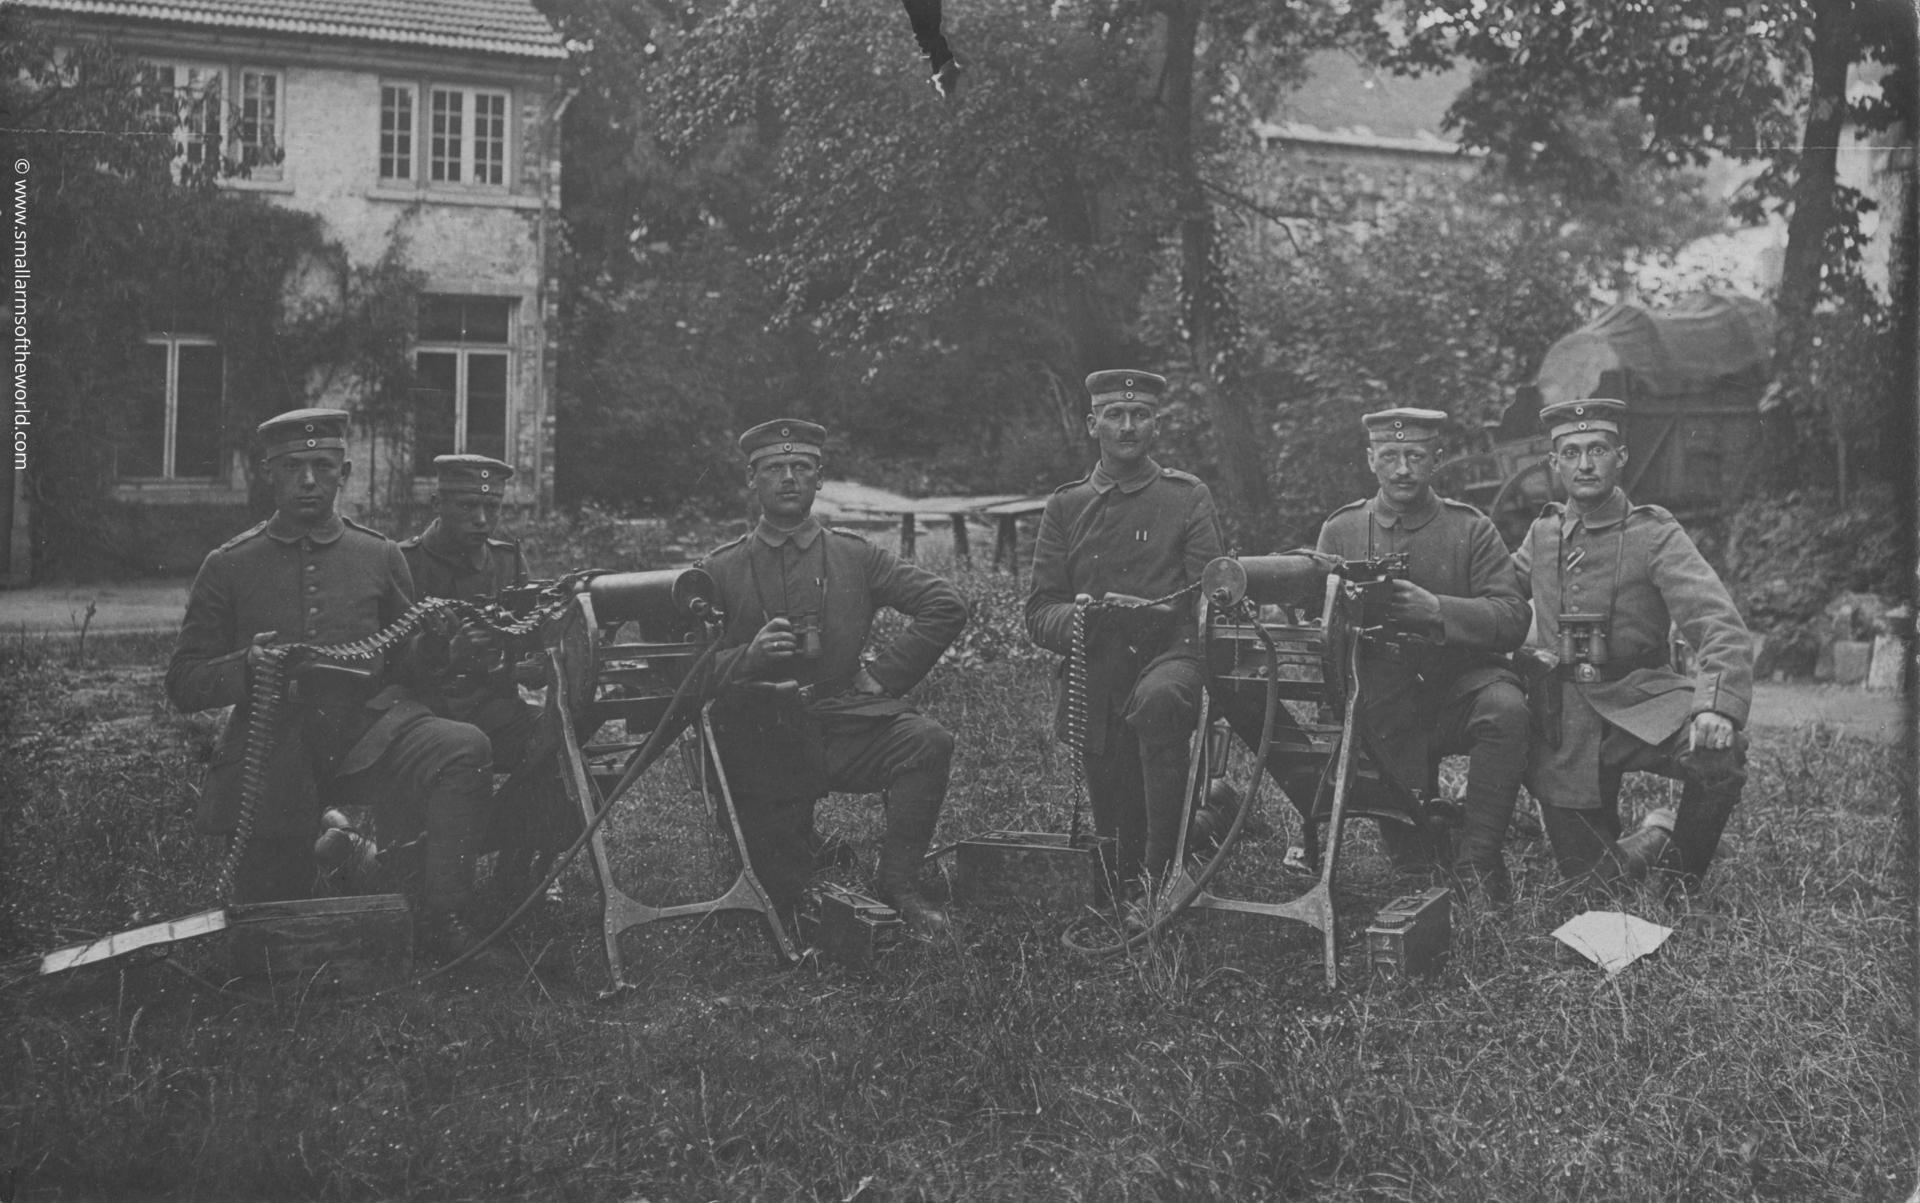 German machine gun crew with their Maxim MG08 machine guns.